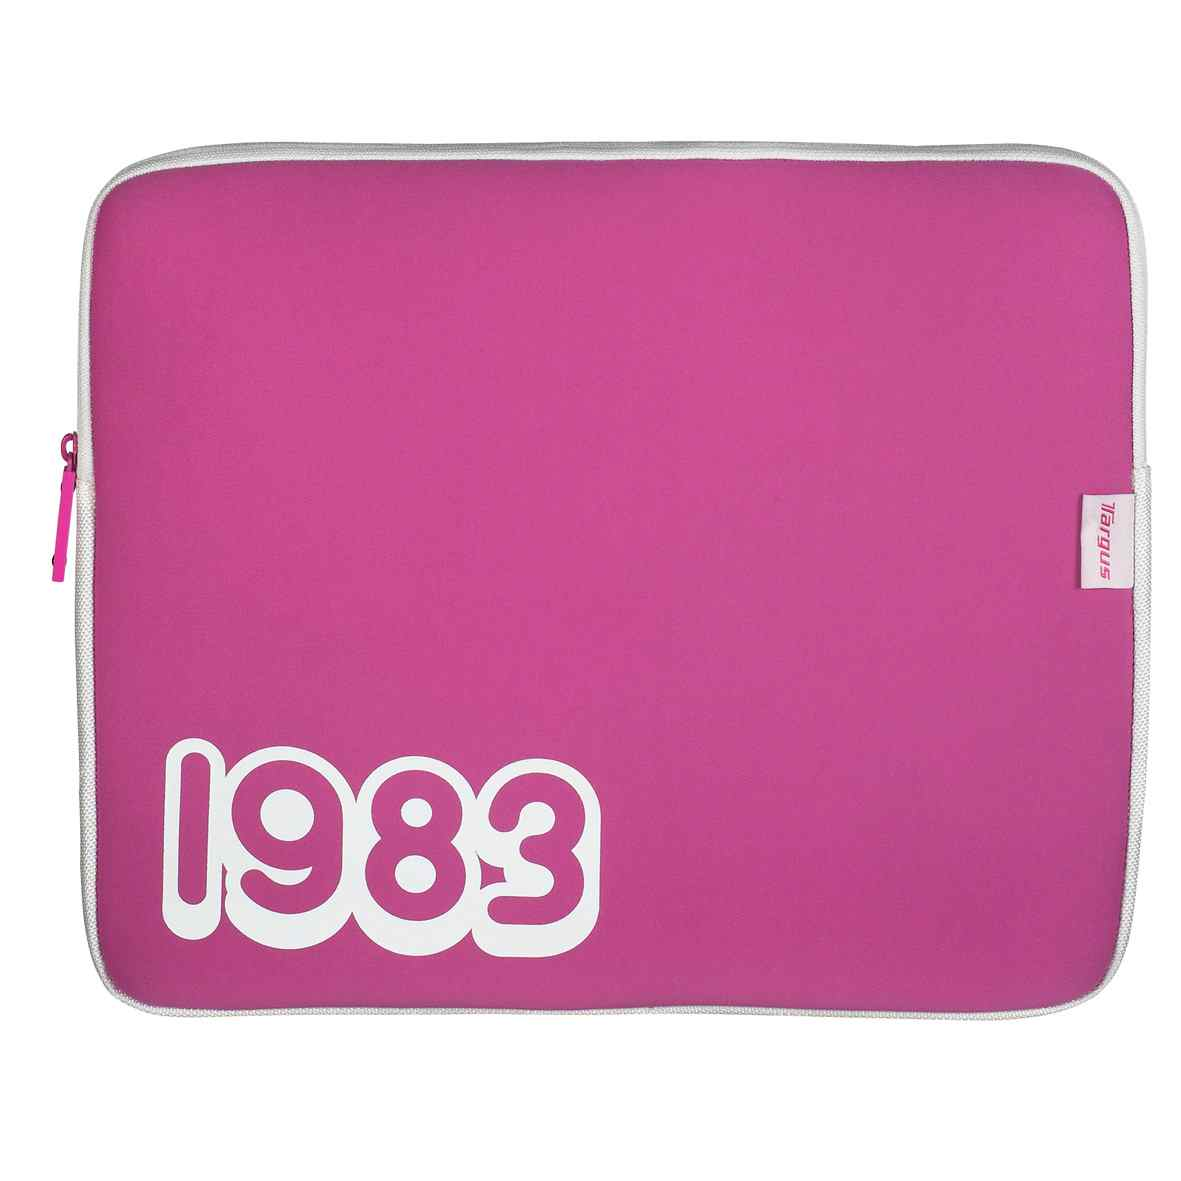 Targus Retro Laptop 154 Skin Pink